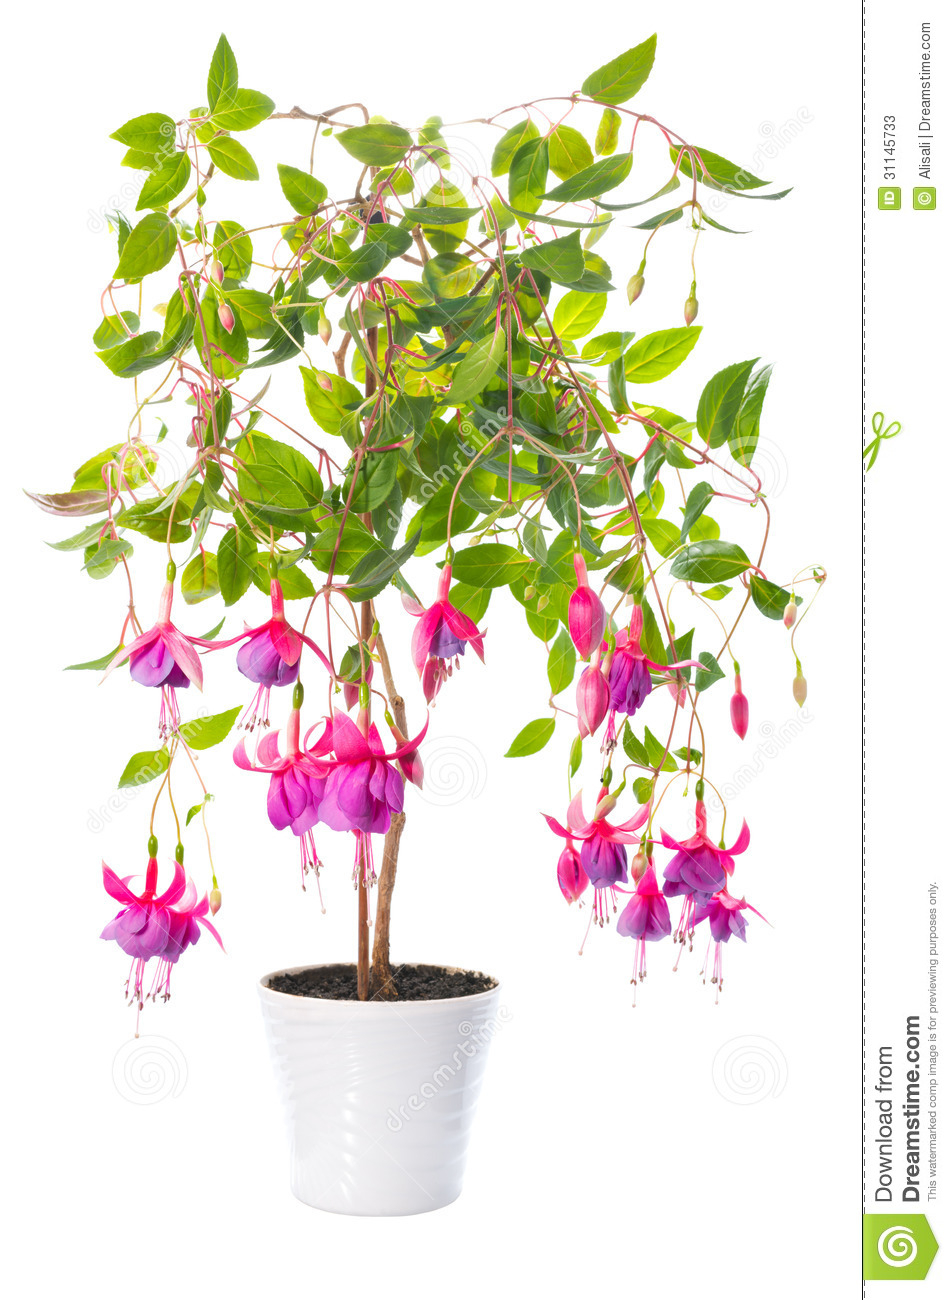 plantes d 39 int rieur fuchsia de fleur dans le pot de fleur. Black Bedroom Furniture Sets. Home Design Ideas